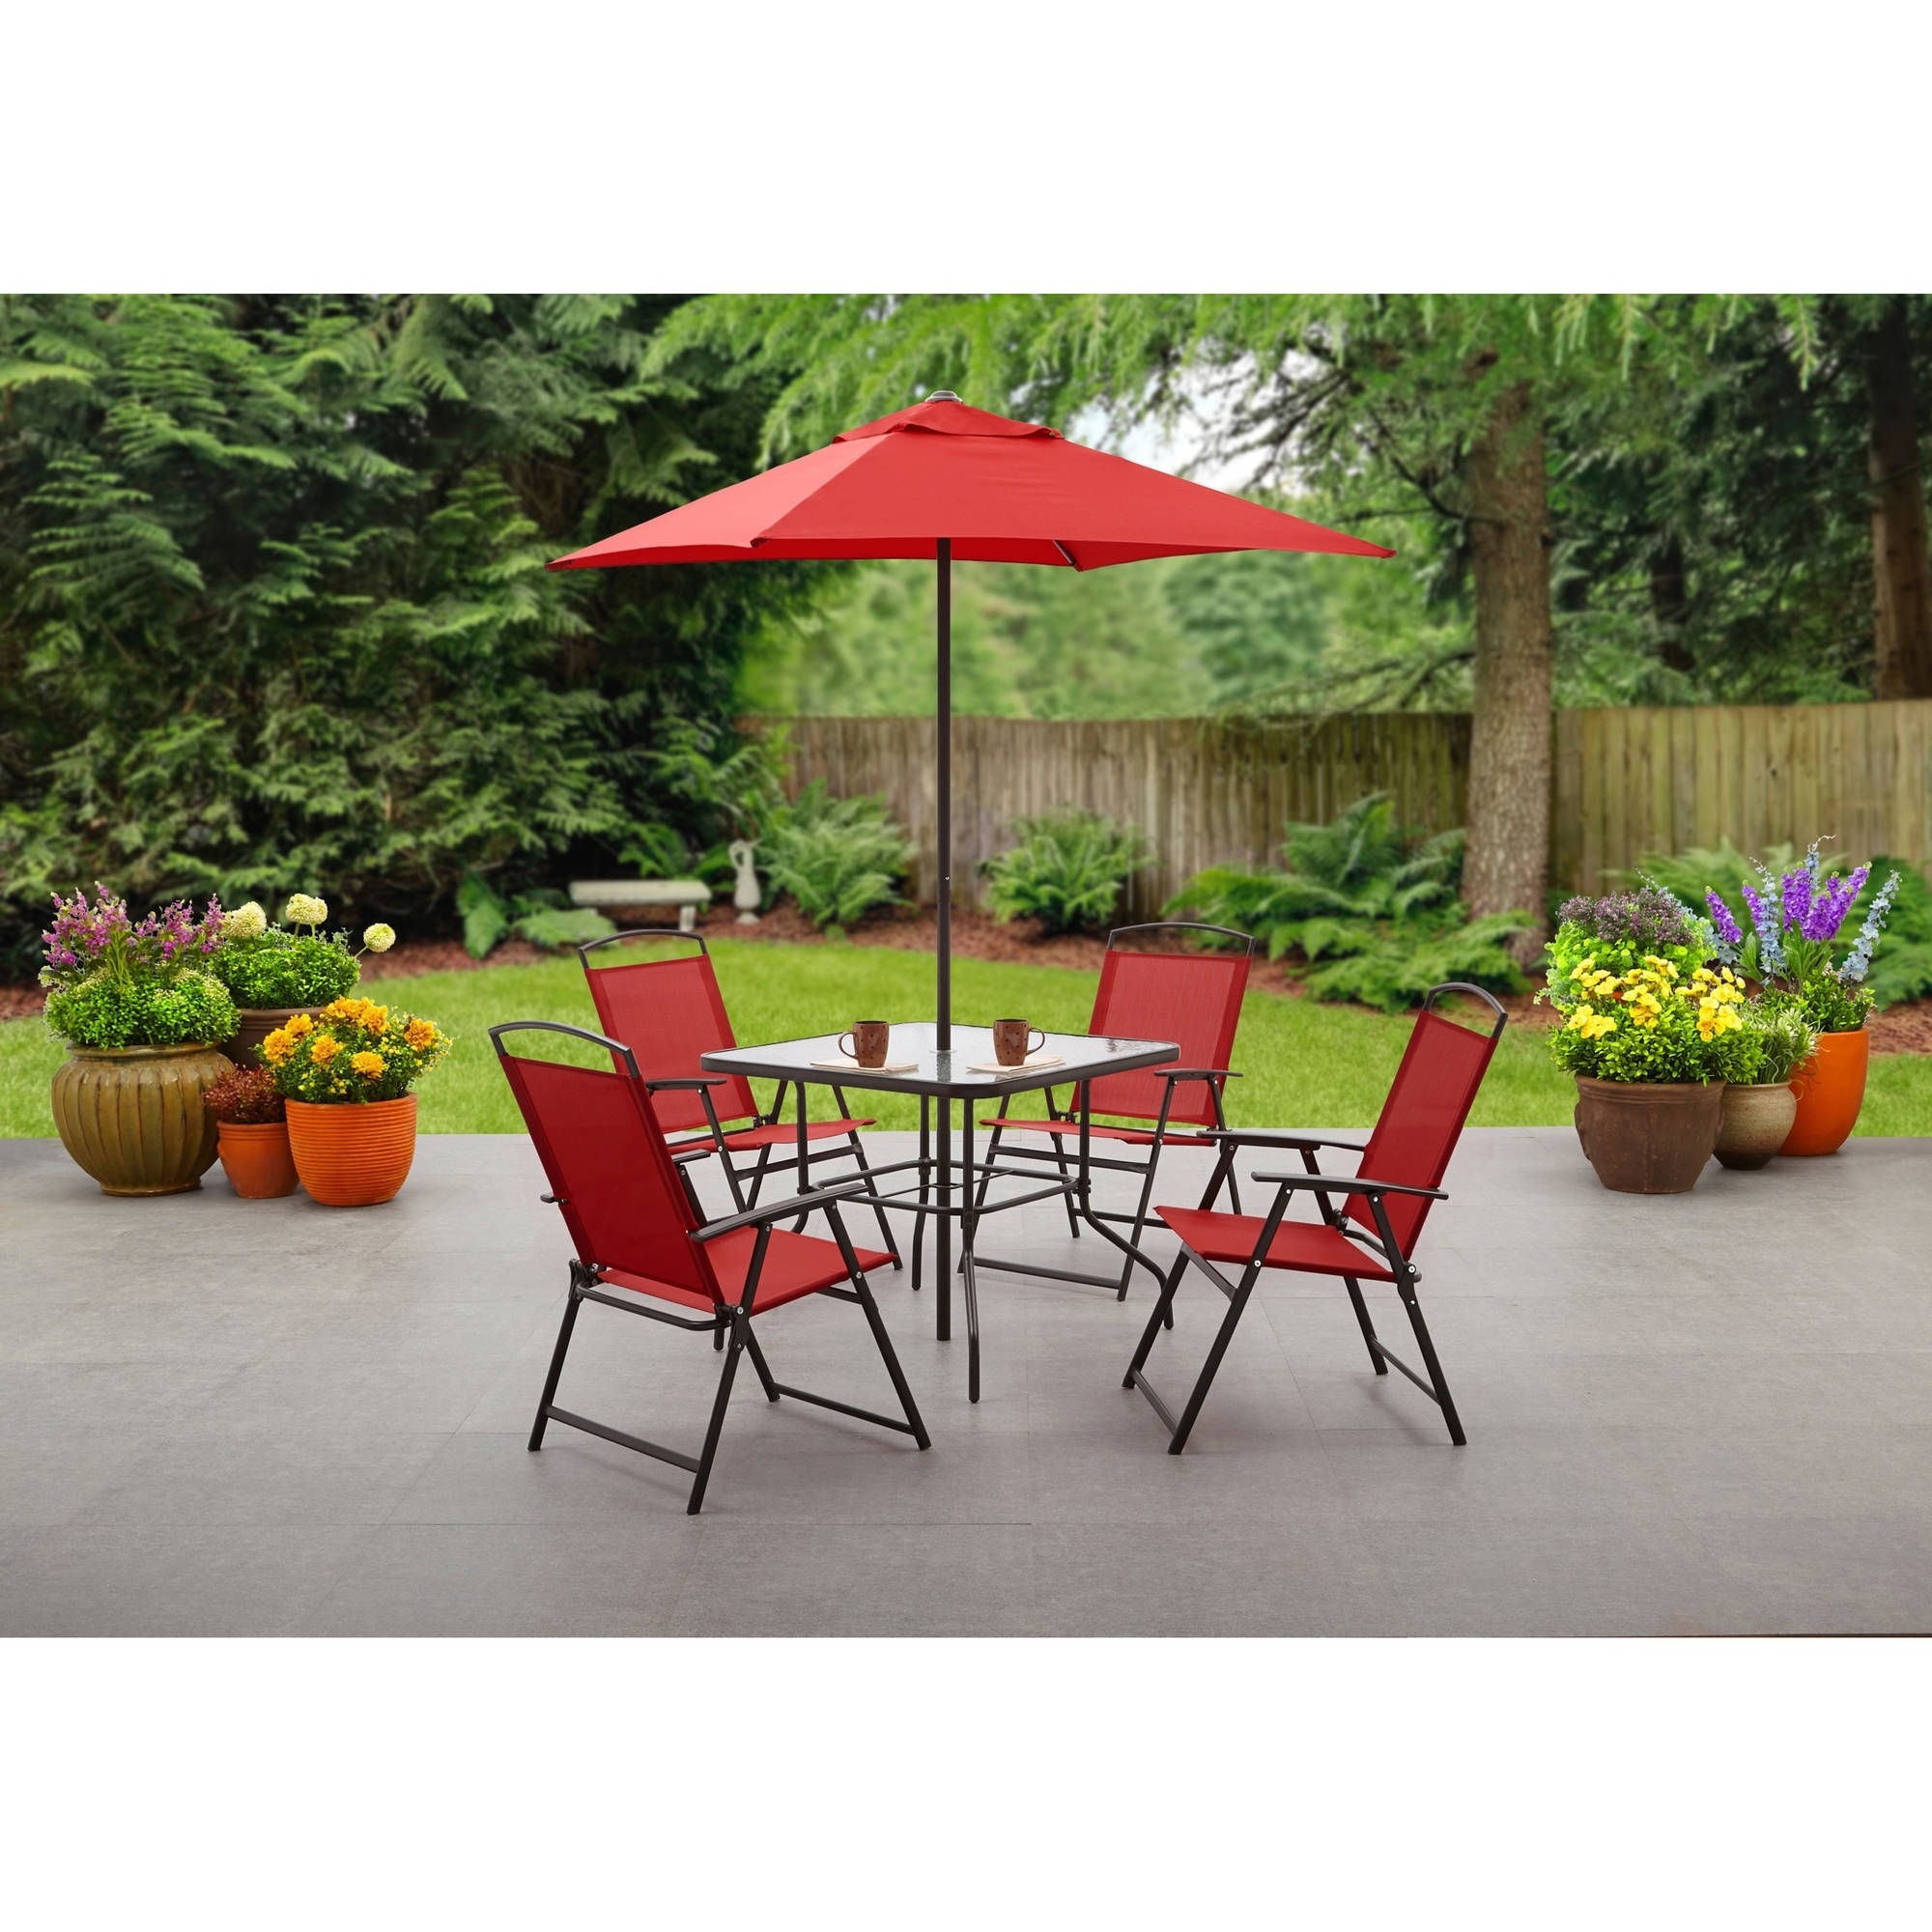 Fashionable Outdoor Dining Table And Chairs Sets With Regard To Mainstays Albany Lane 6 Piece Folding Dining Set, Multiple Colors (View 13 of 25)